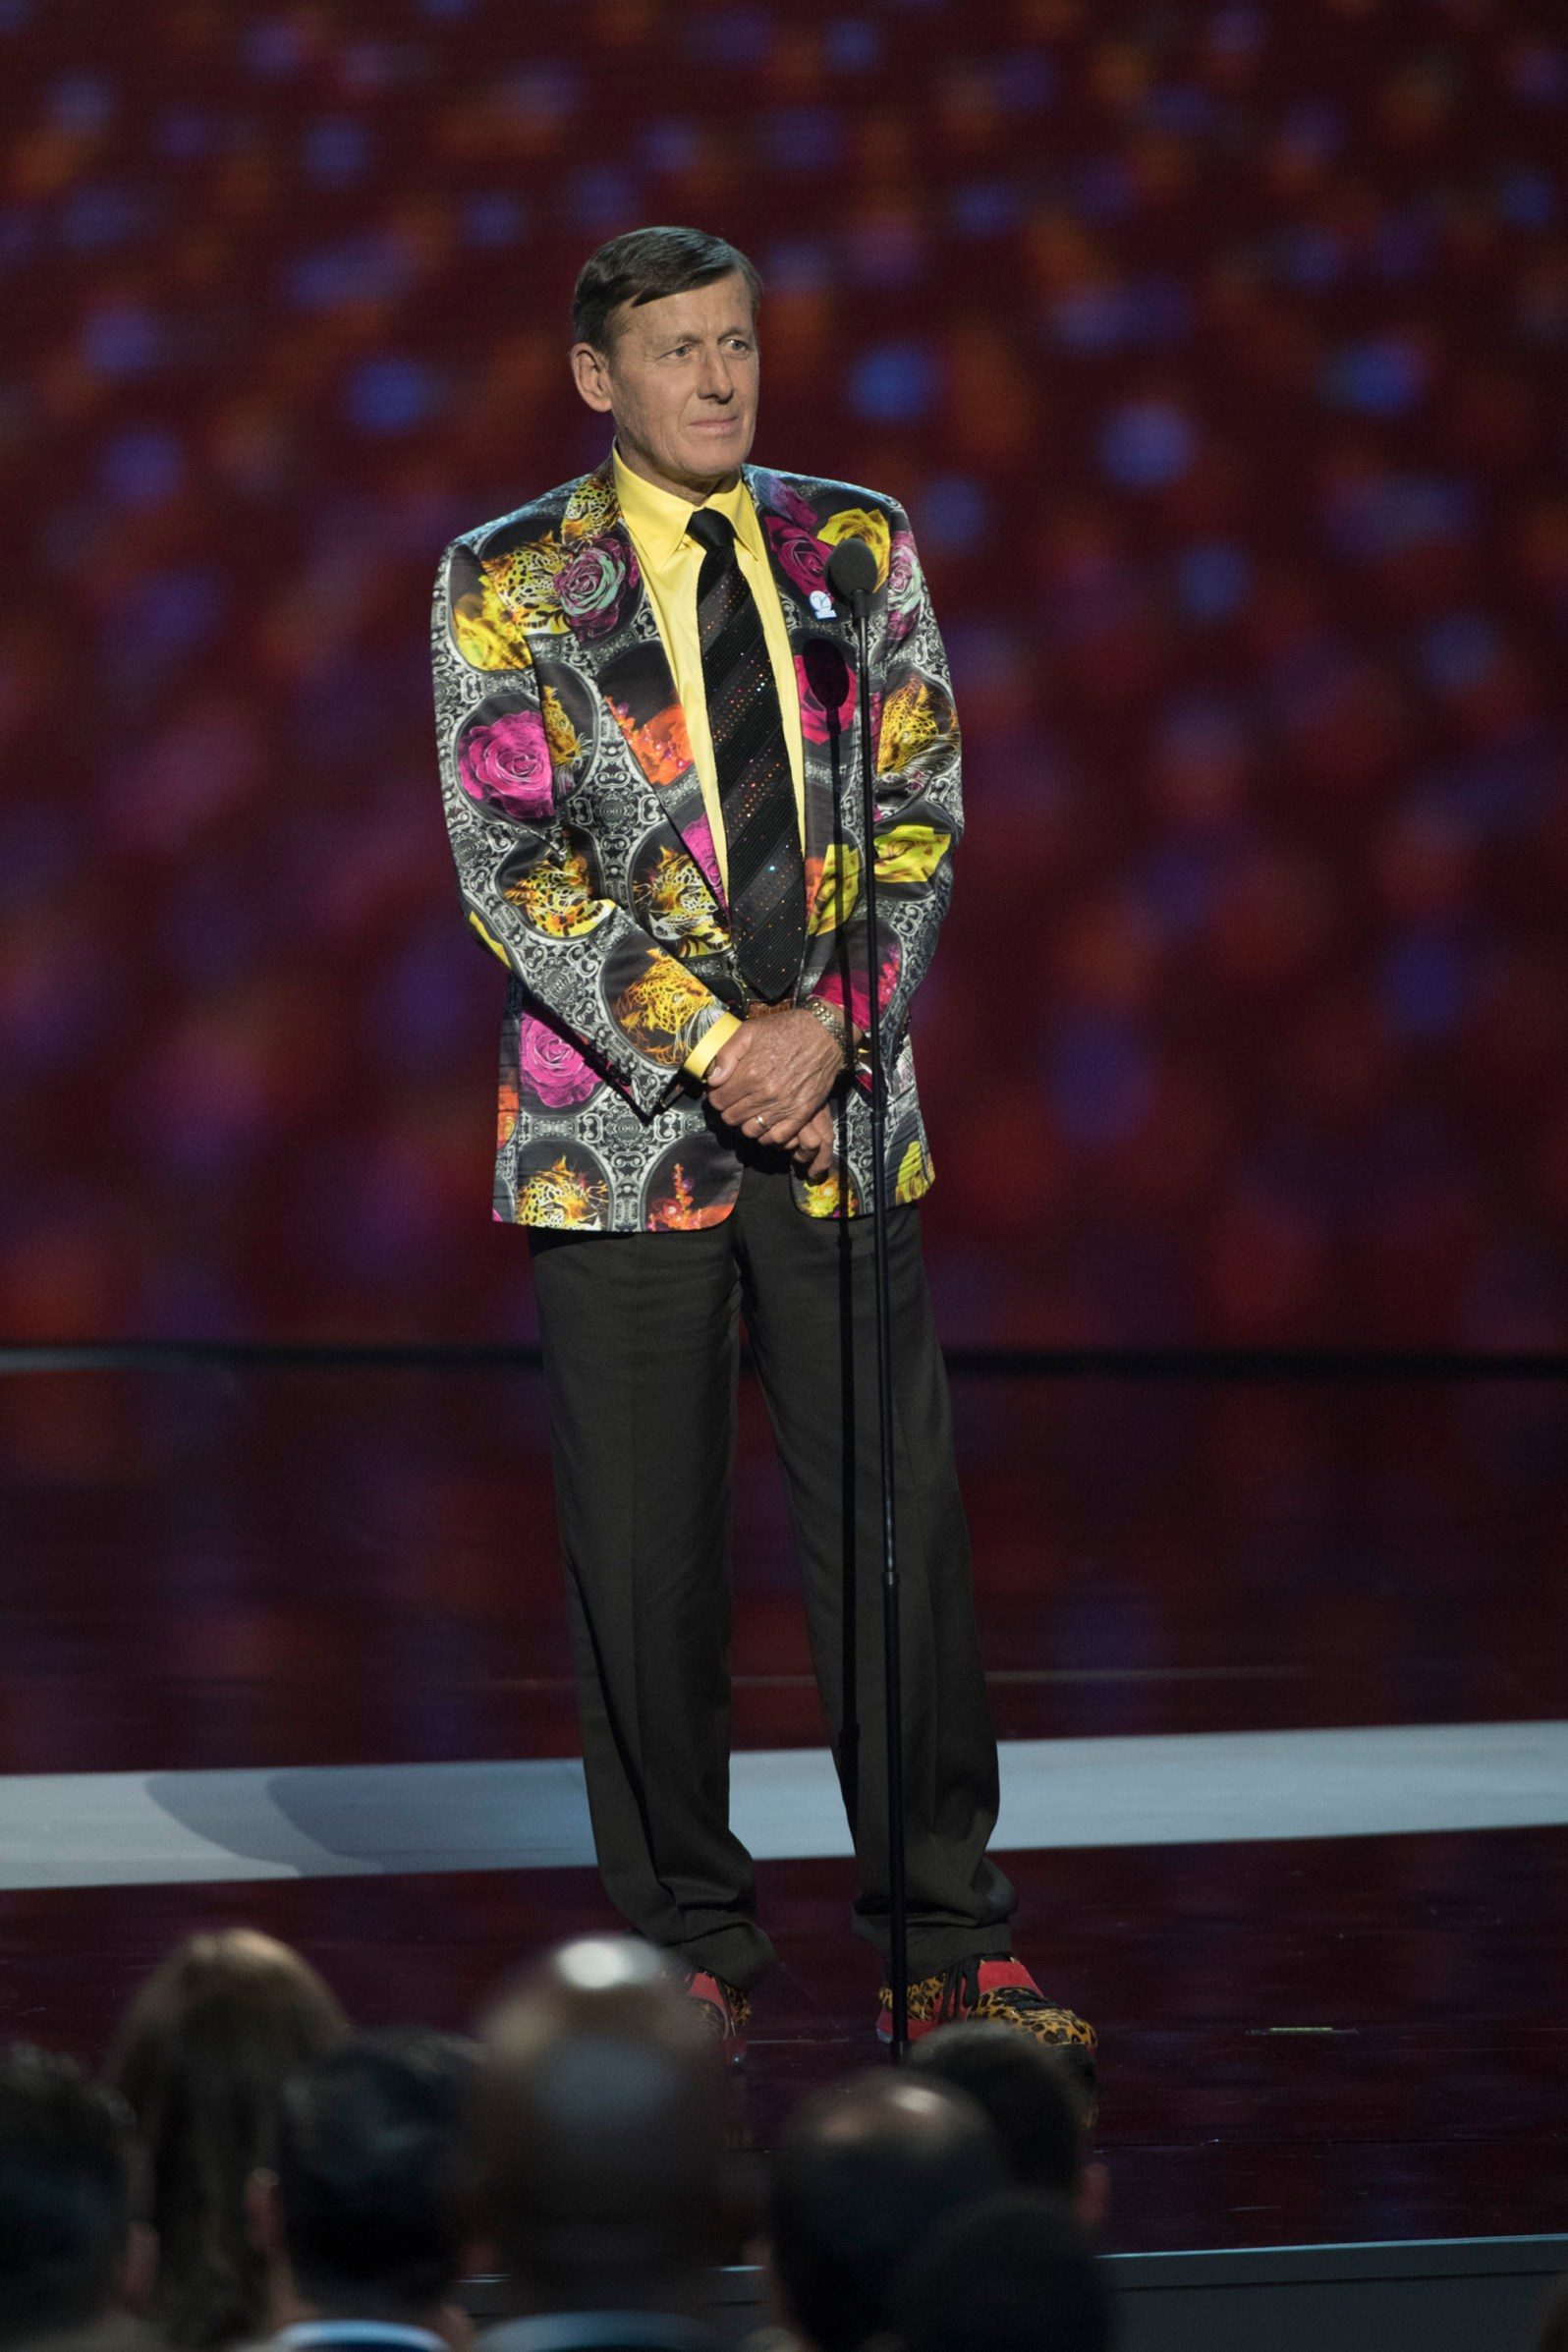 Craig Sager at the 2016 ESPYS. (Courtesy of Disney/ABC Television Group/Flickr Creative Commons)